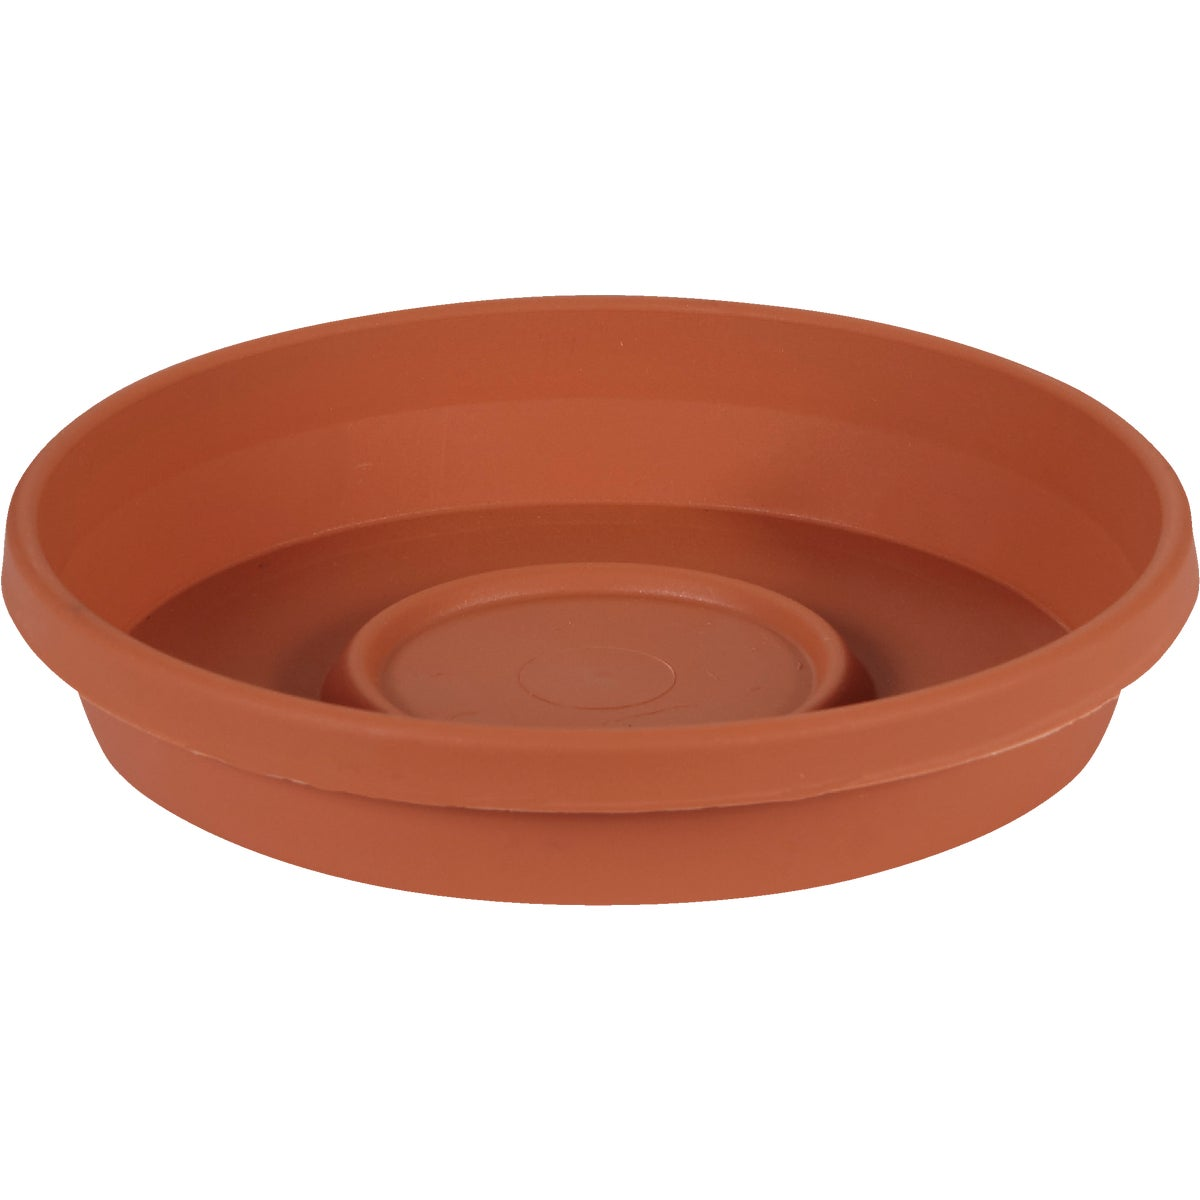 "12"" CLAY POLY SAUCER - 20-51012C by Fiskars Brands Inc"